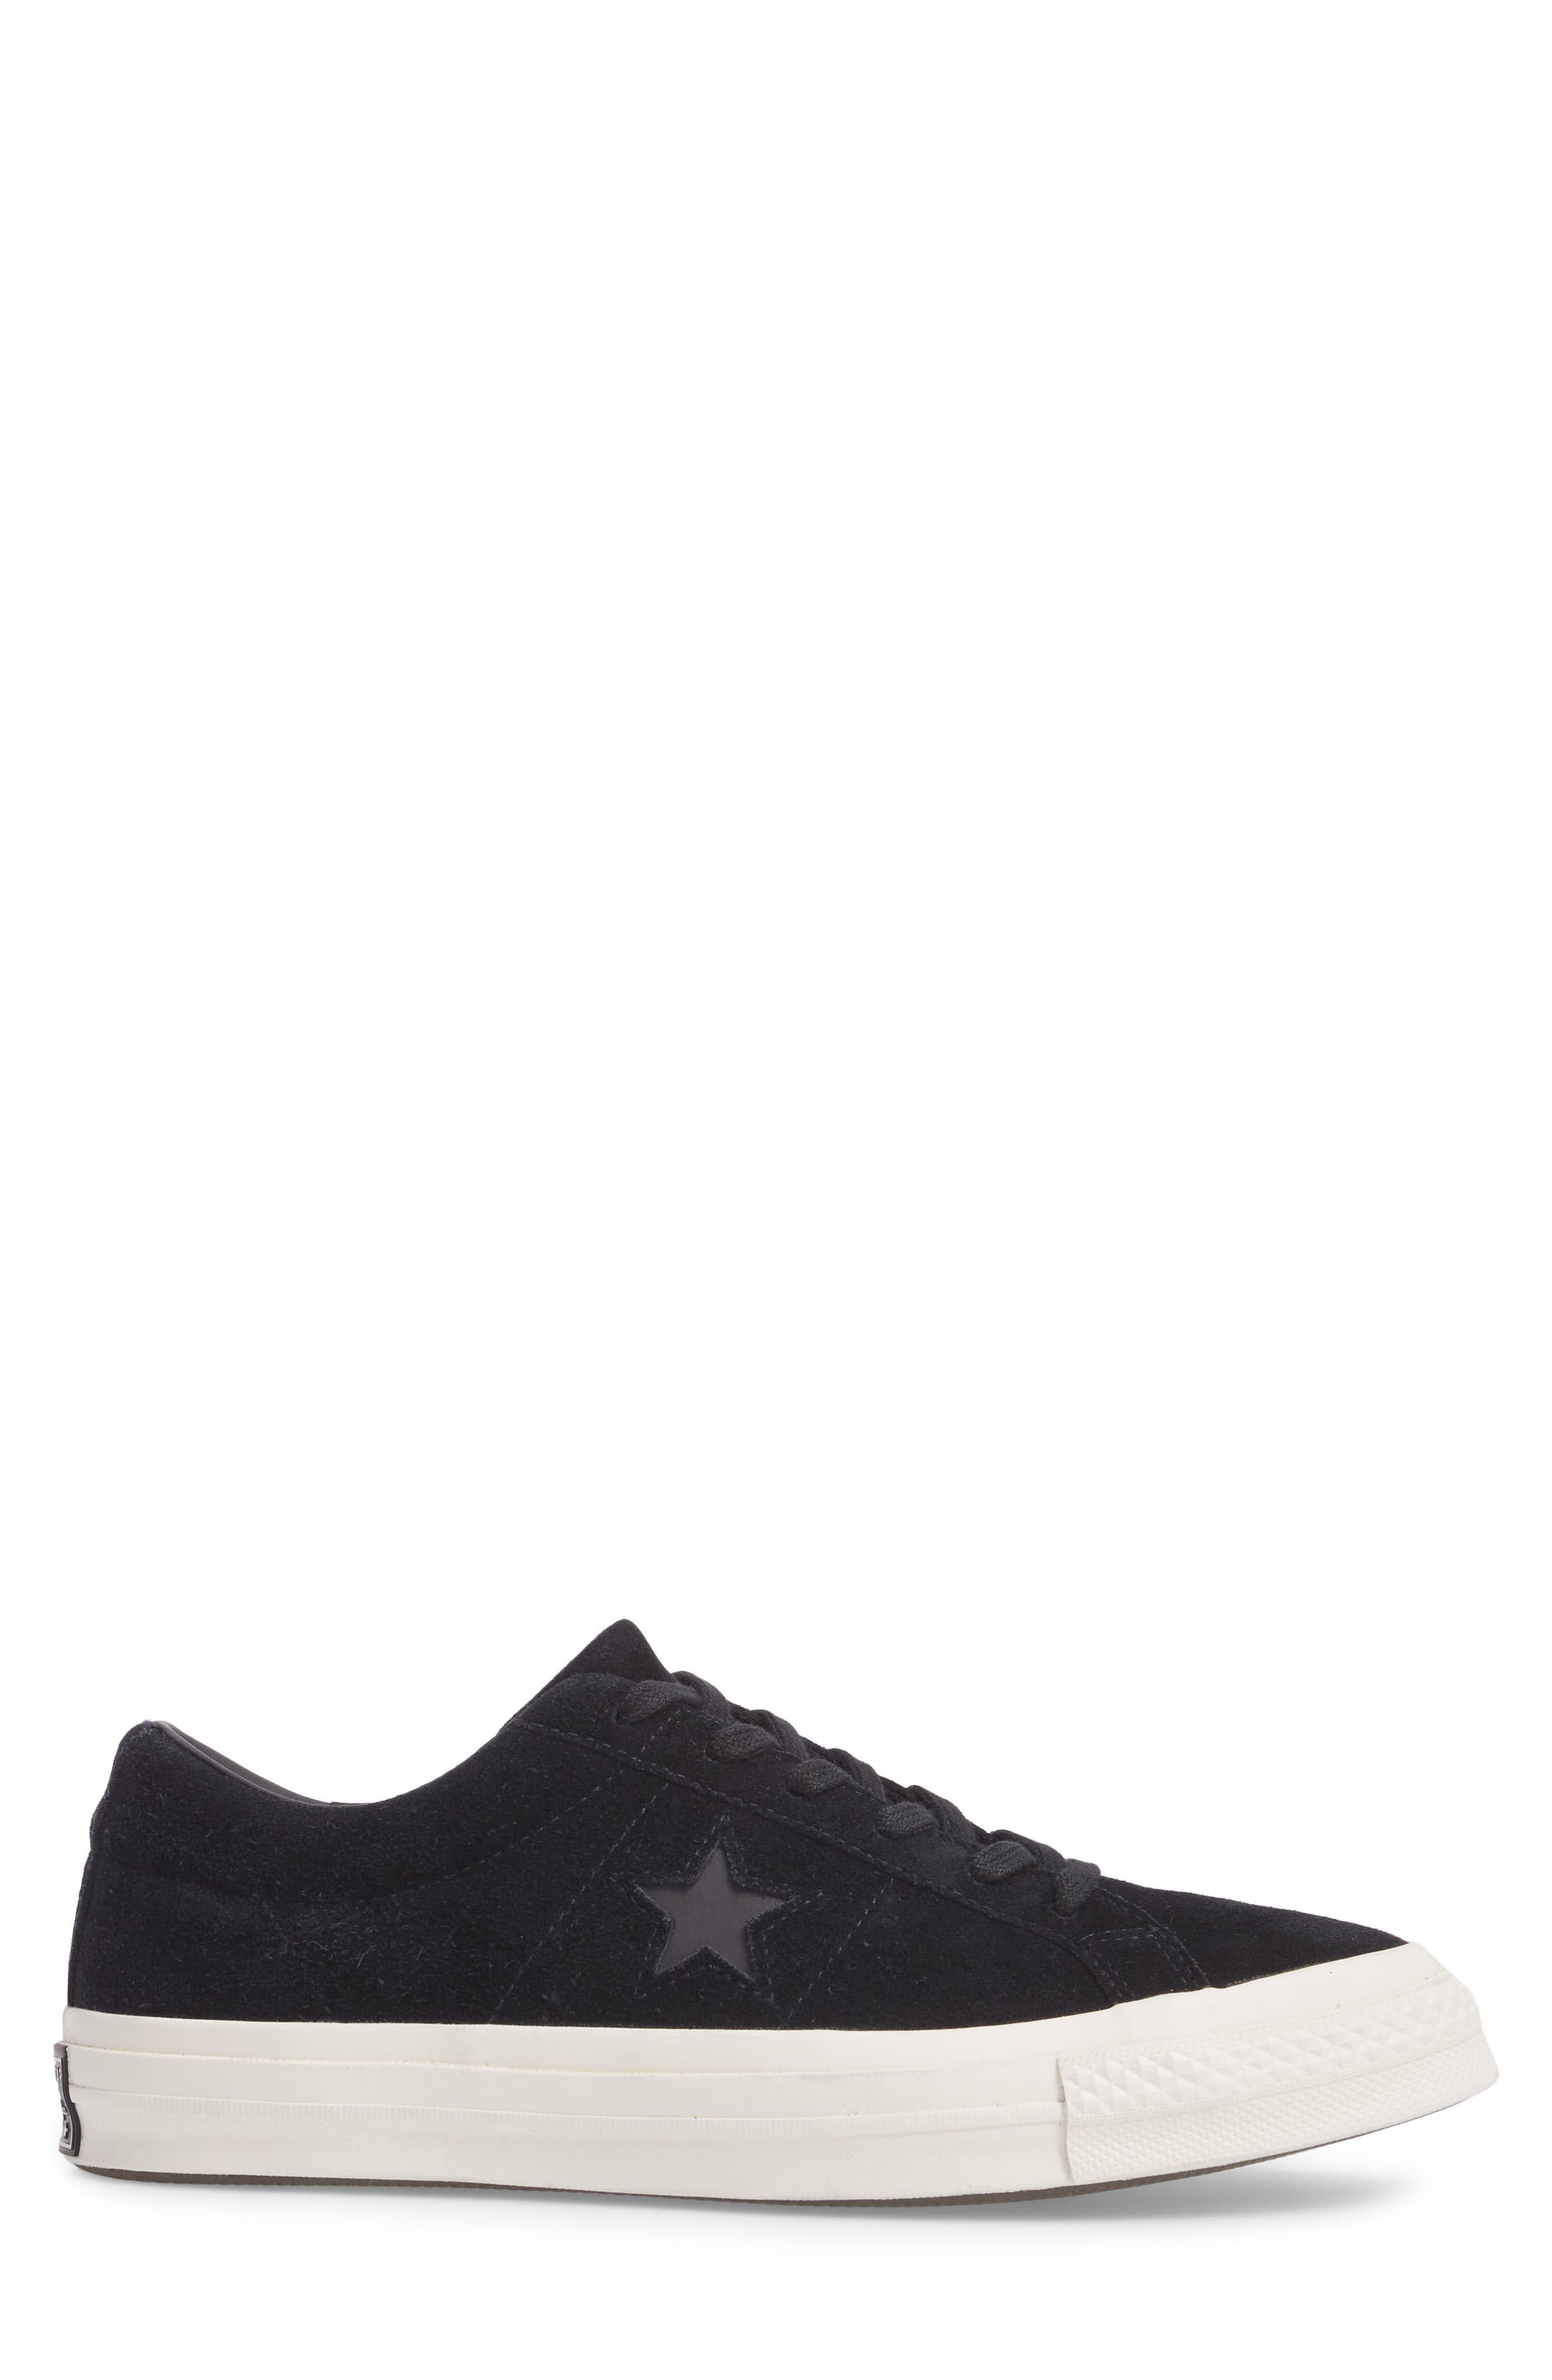 CONVERSE,                             One Star Sneaker,                             Alternate thumbnail 3, color,                             001